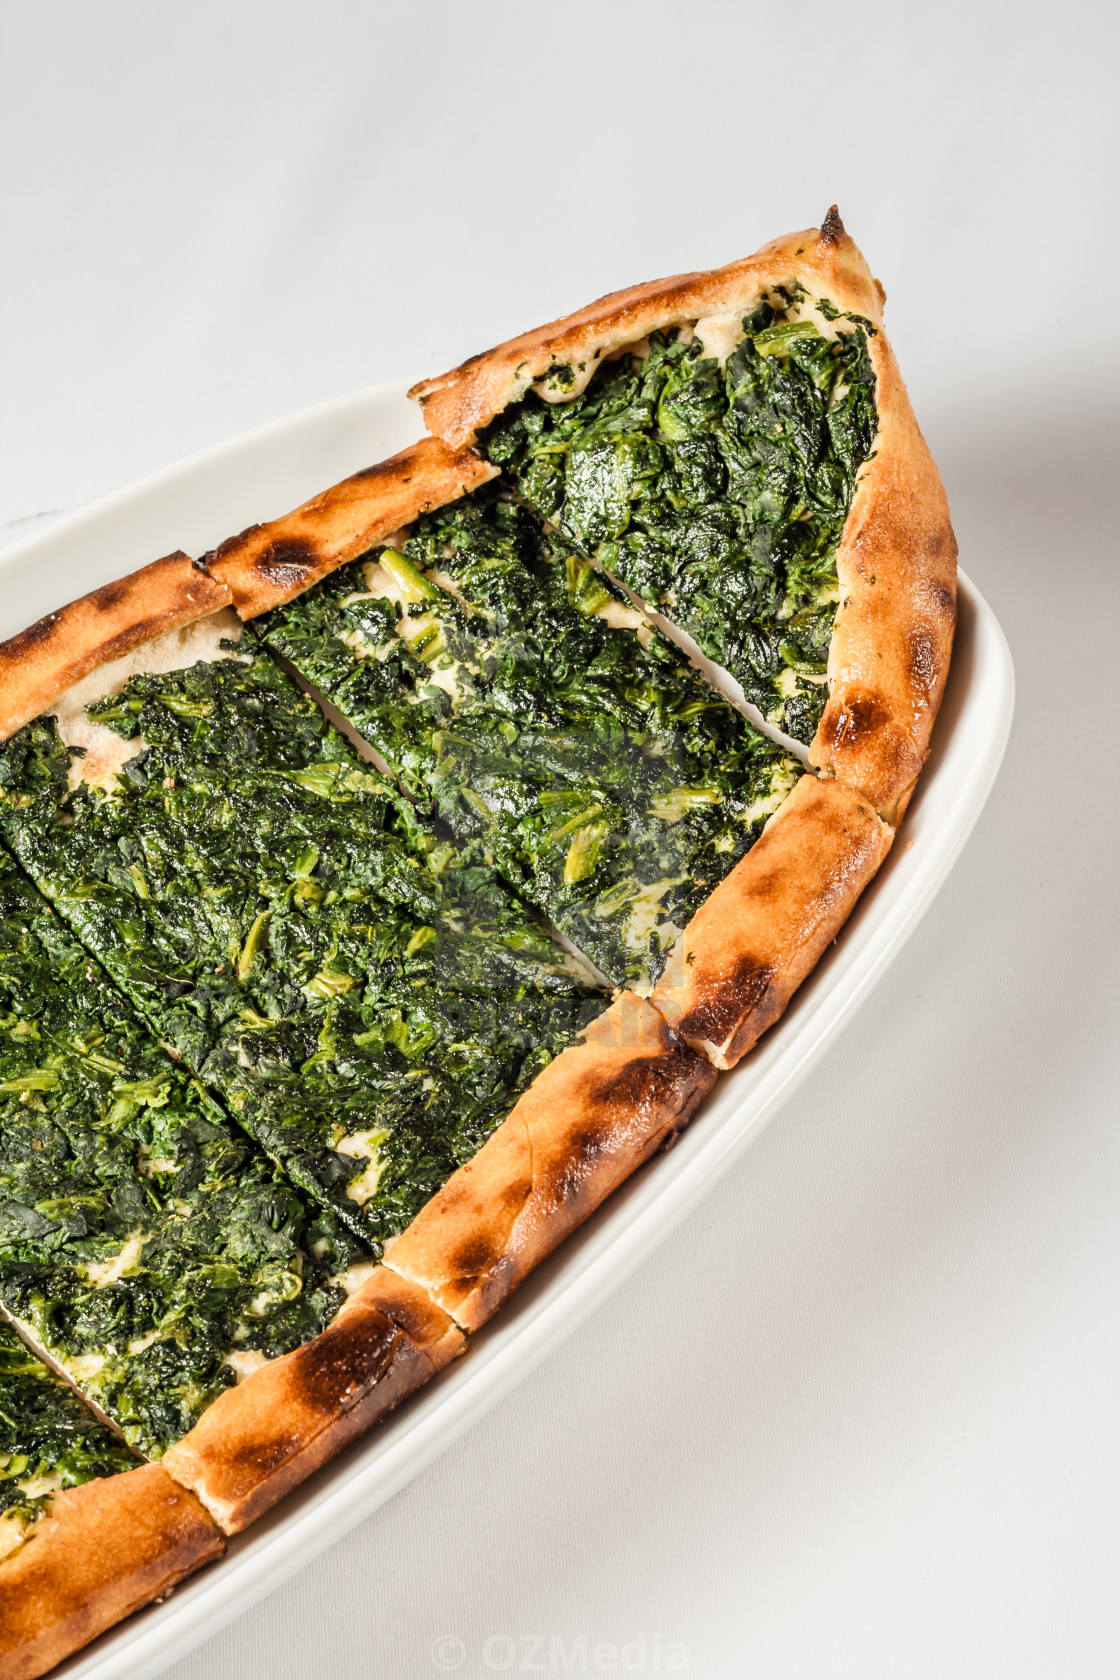 Authentic Turkish Pita Bread with Spinach - License, download or